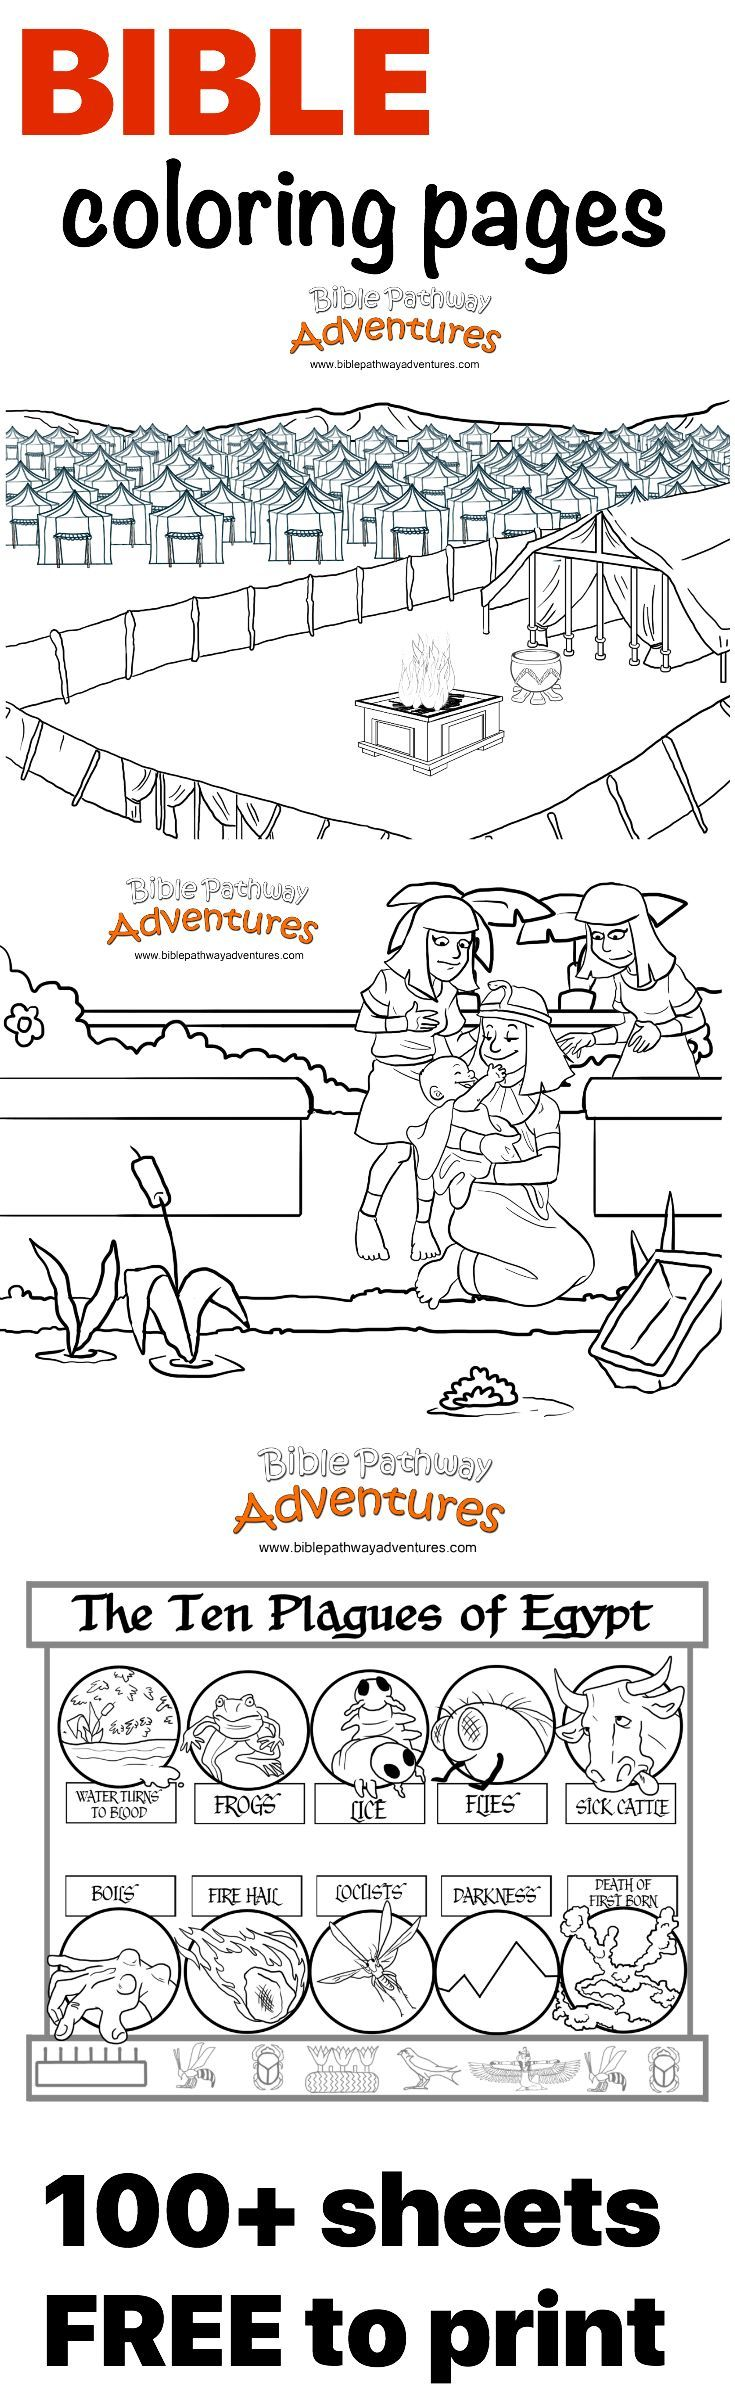 bible games coloring pages - photo#45